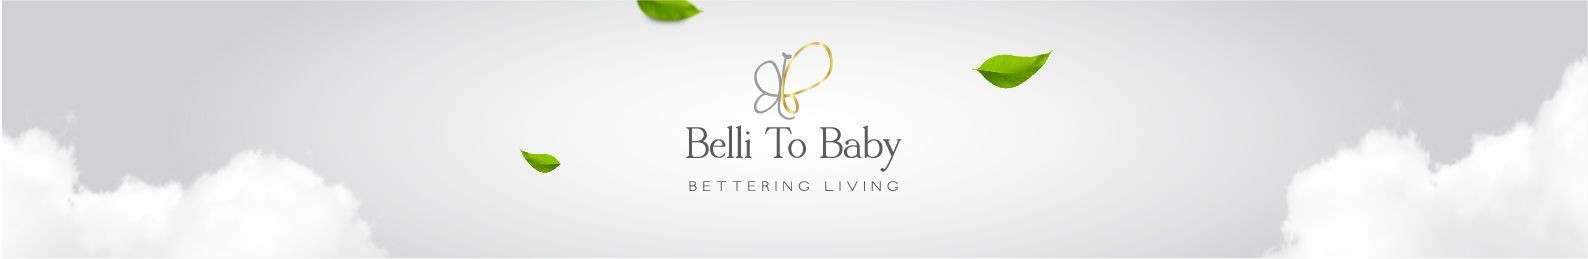 Belli To Baby